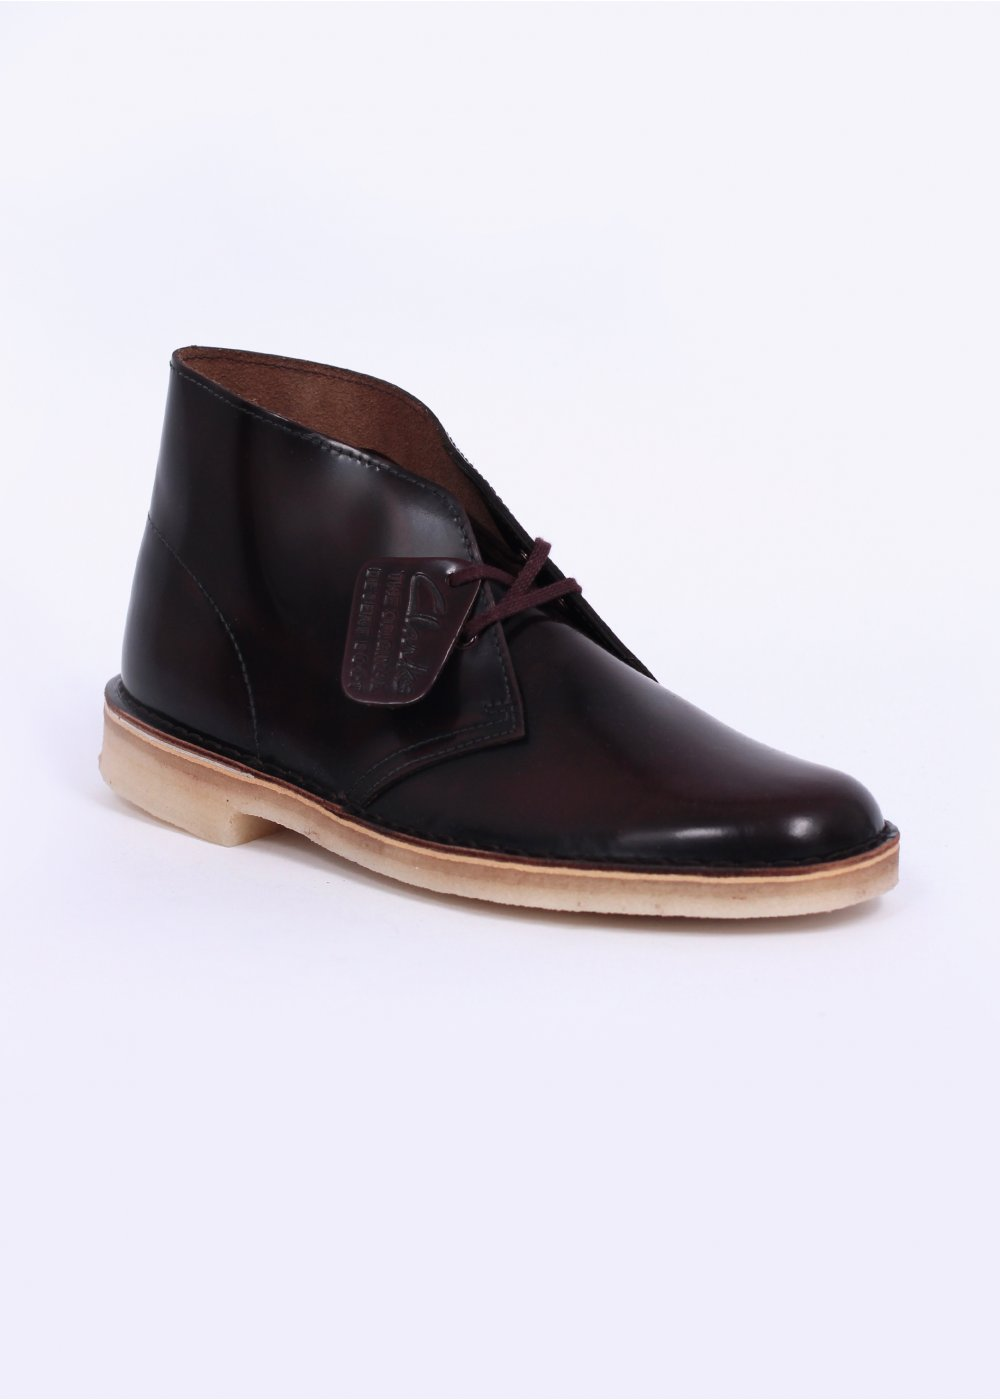 Clarks Glossy Stone Shoes